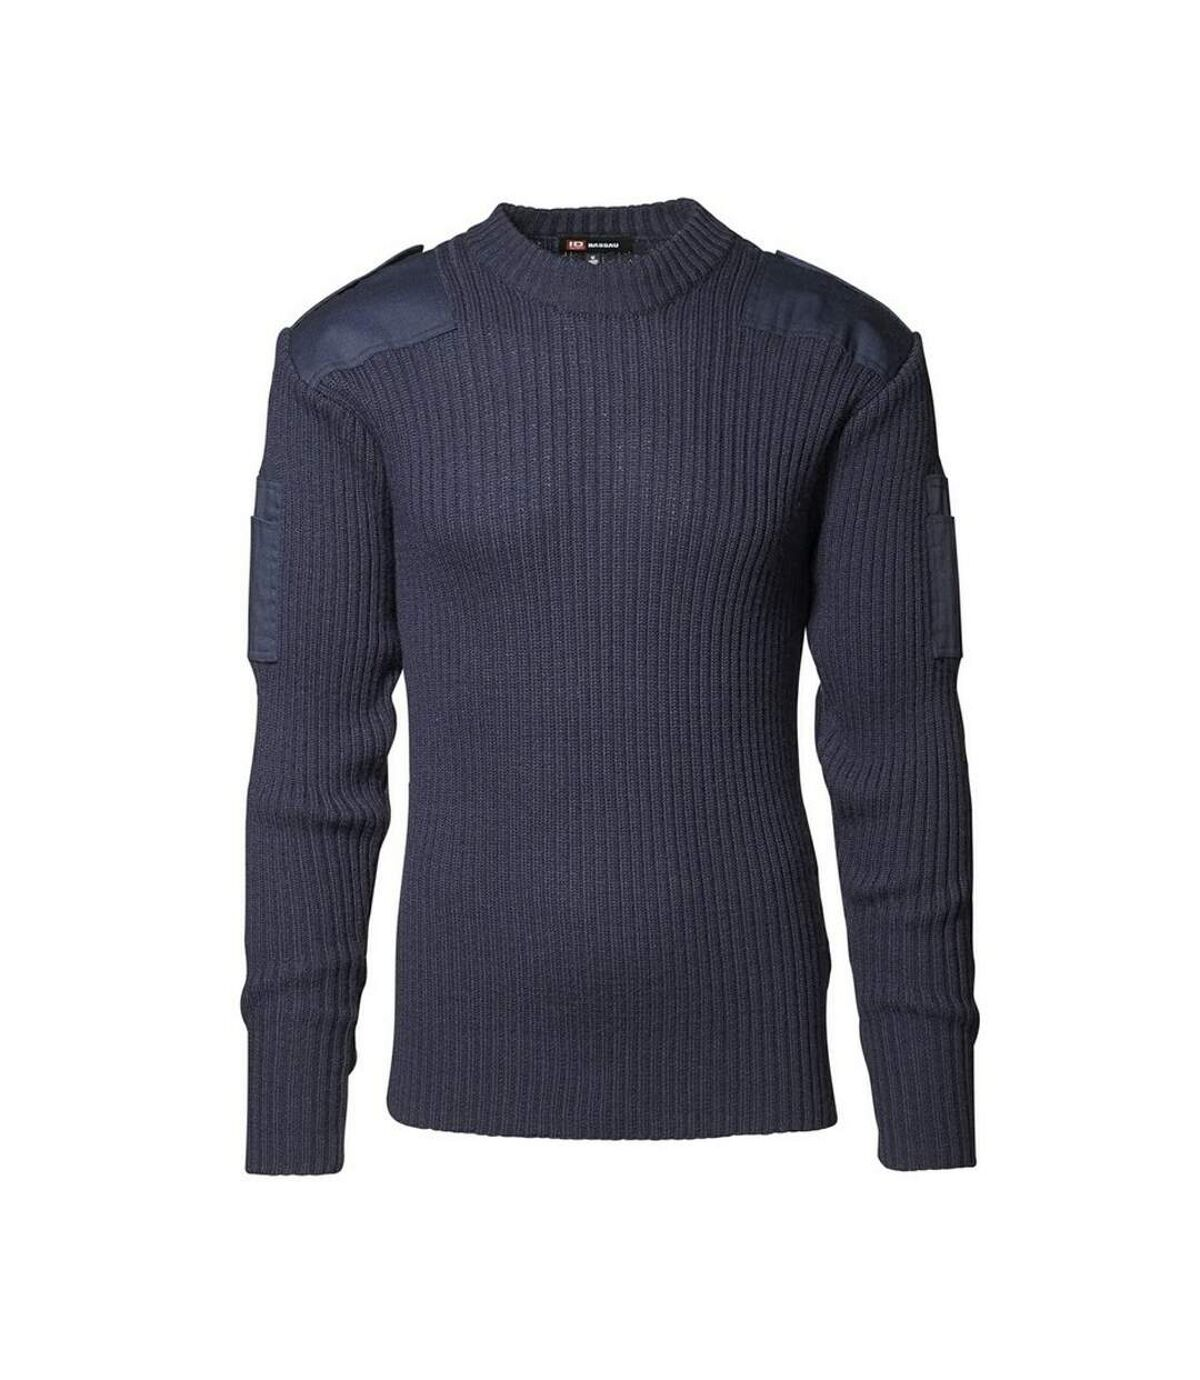 ID Mens Army Fitted Pullover With Patches (Navy) - UTID129